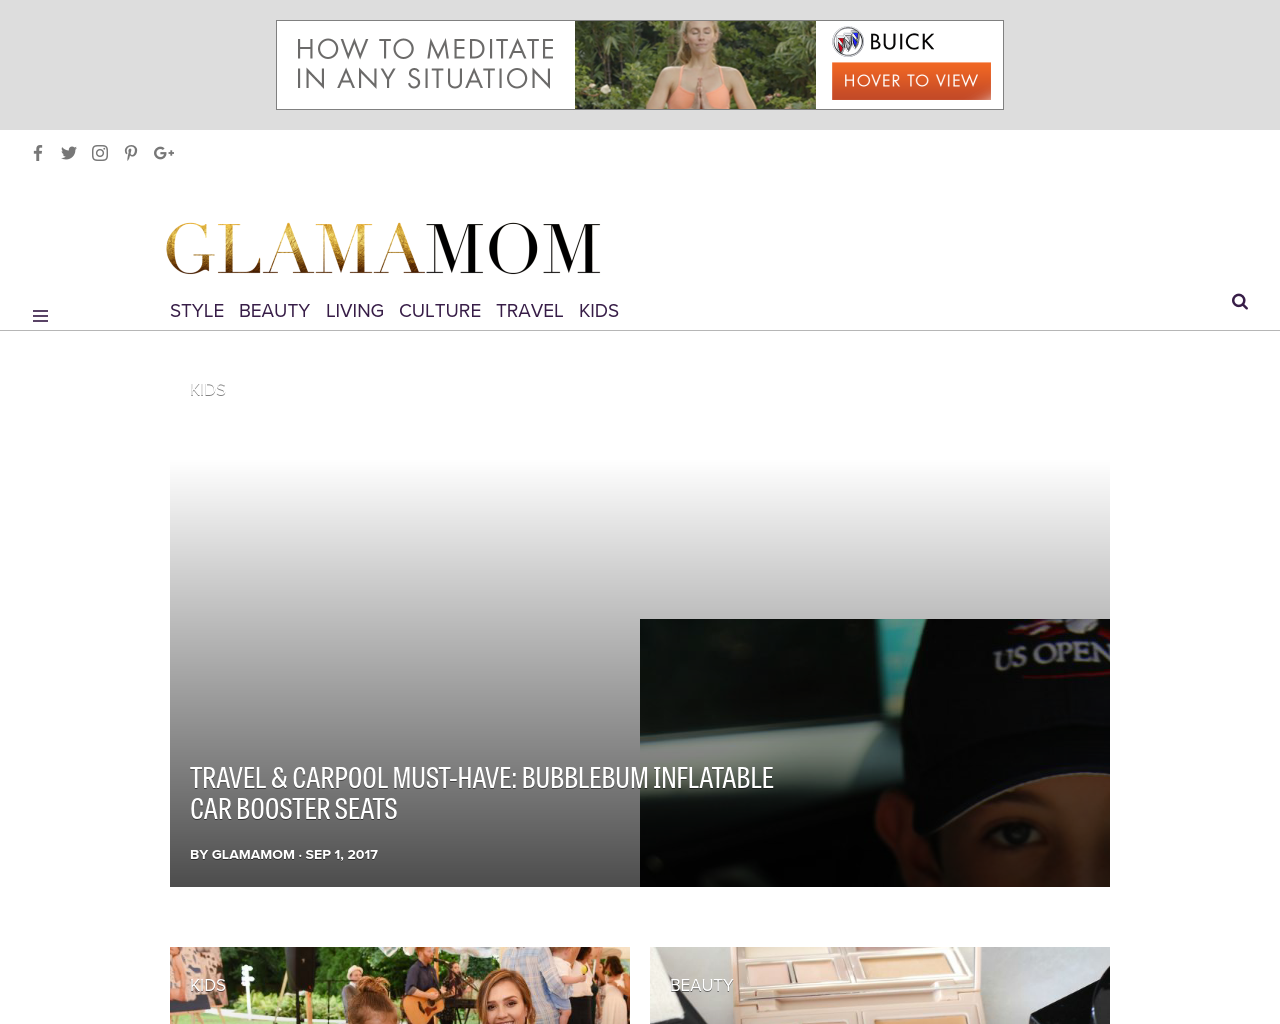 Glamamom-Advertising-Reviews-Pricing